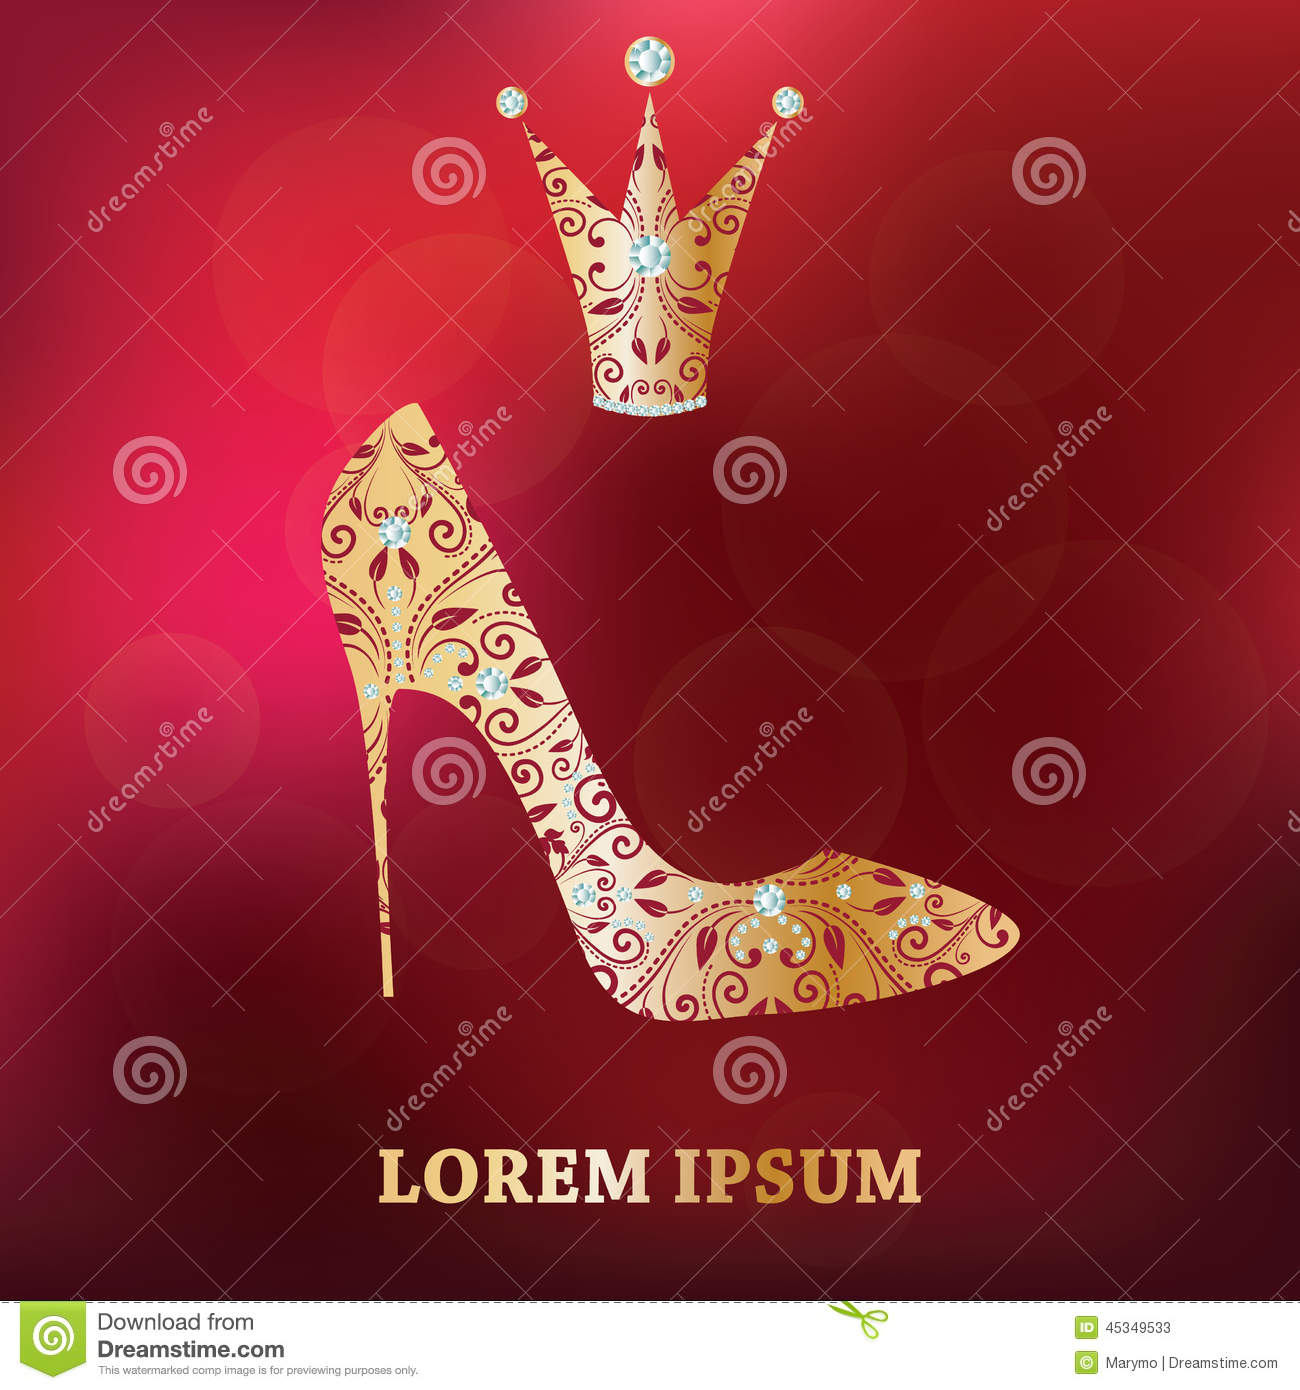 Abstract Flower Background With Decoration Elements For: Golden Shoe And Crown With Abstract Floral Decor On Luxury